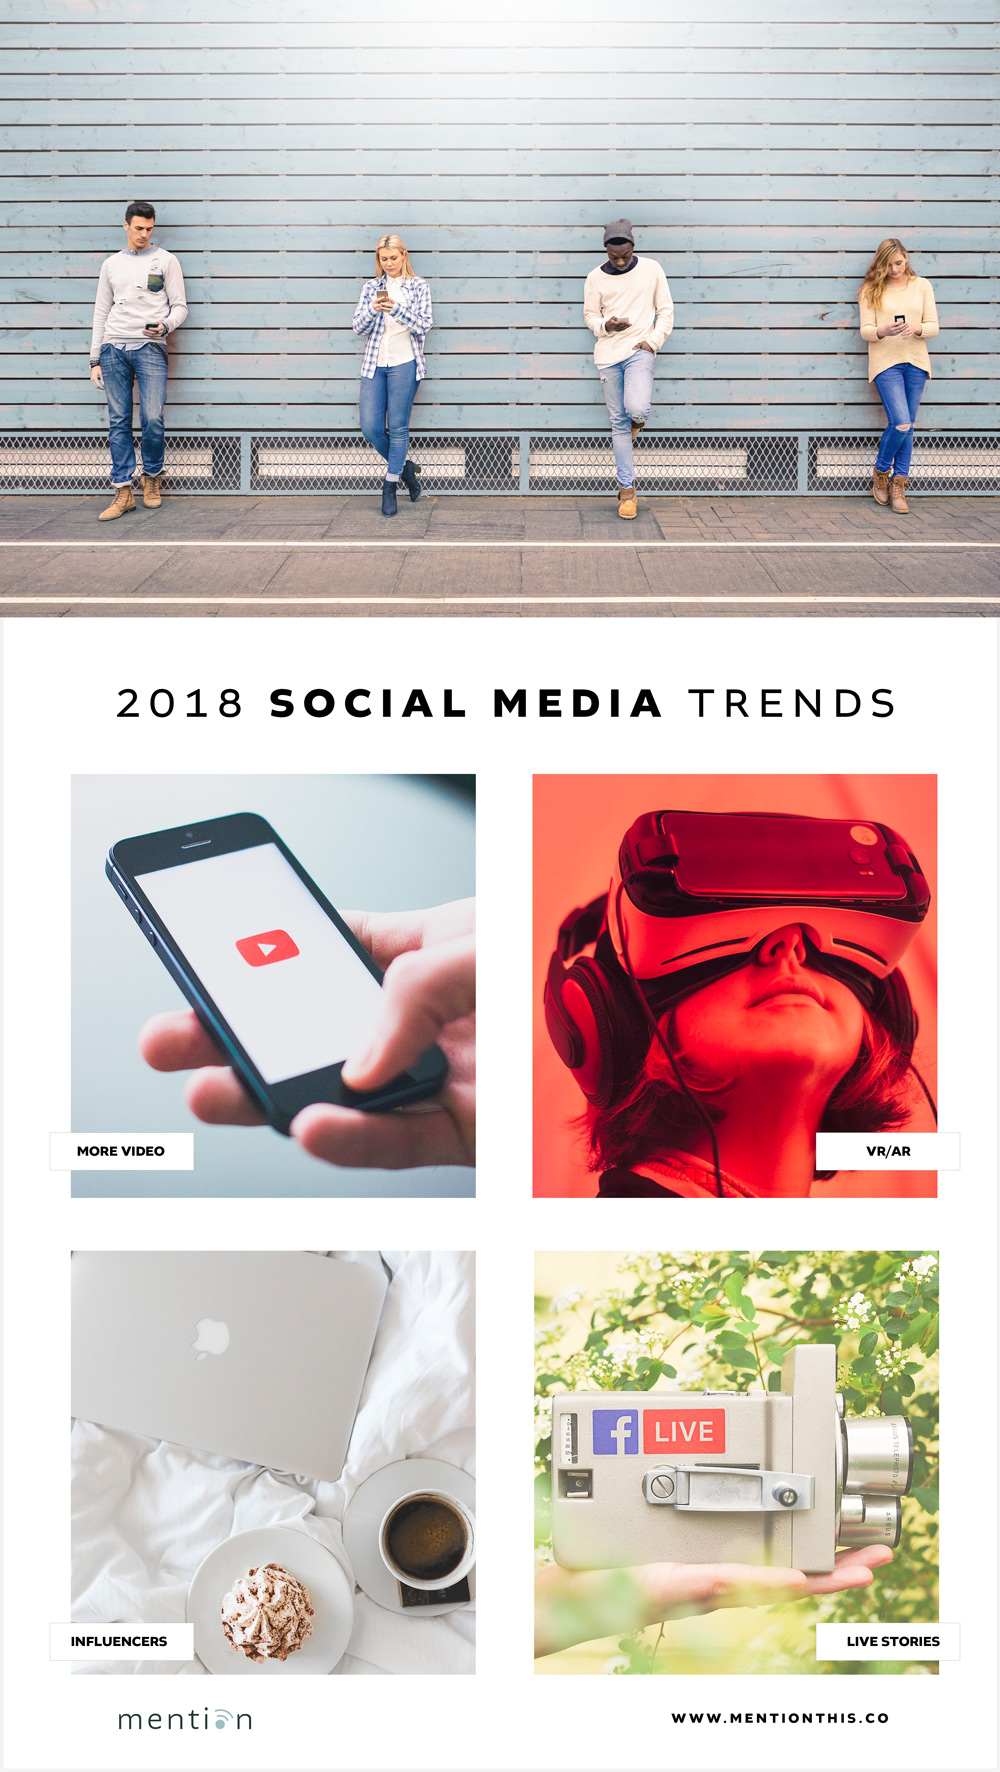 2018 social media trends to look out for